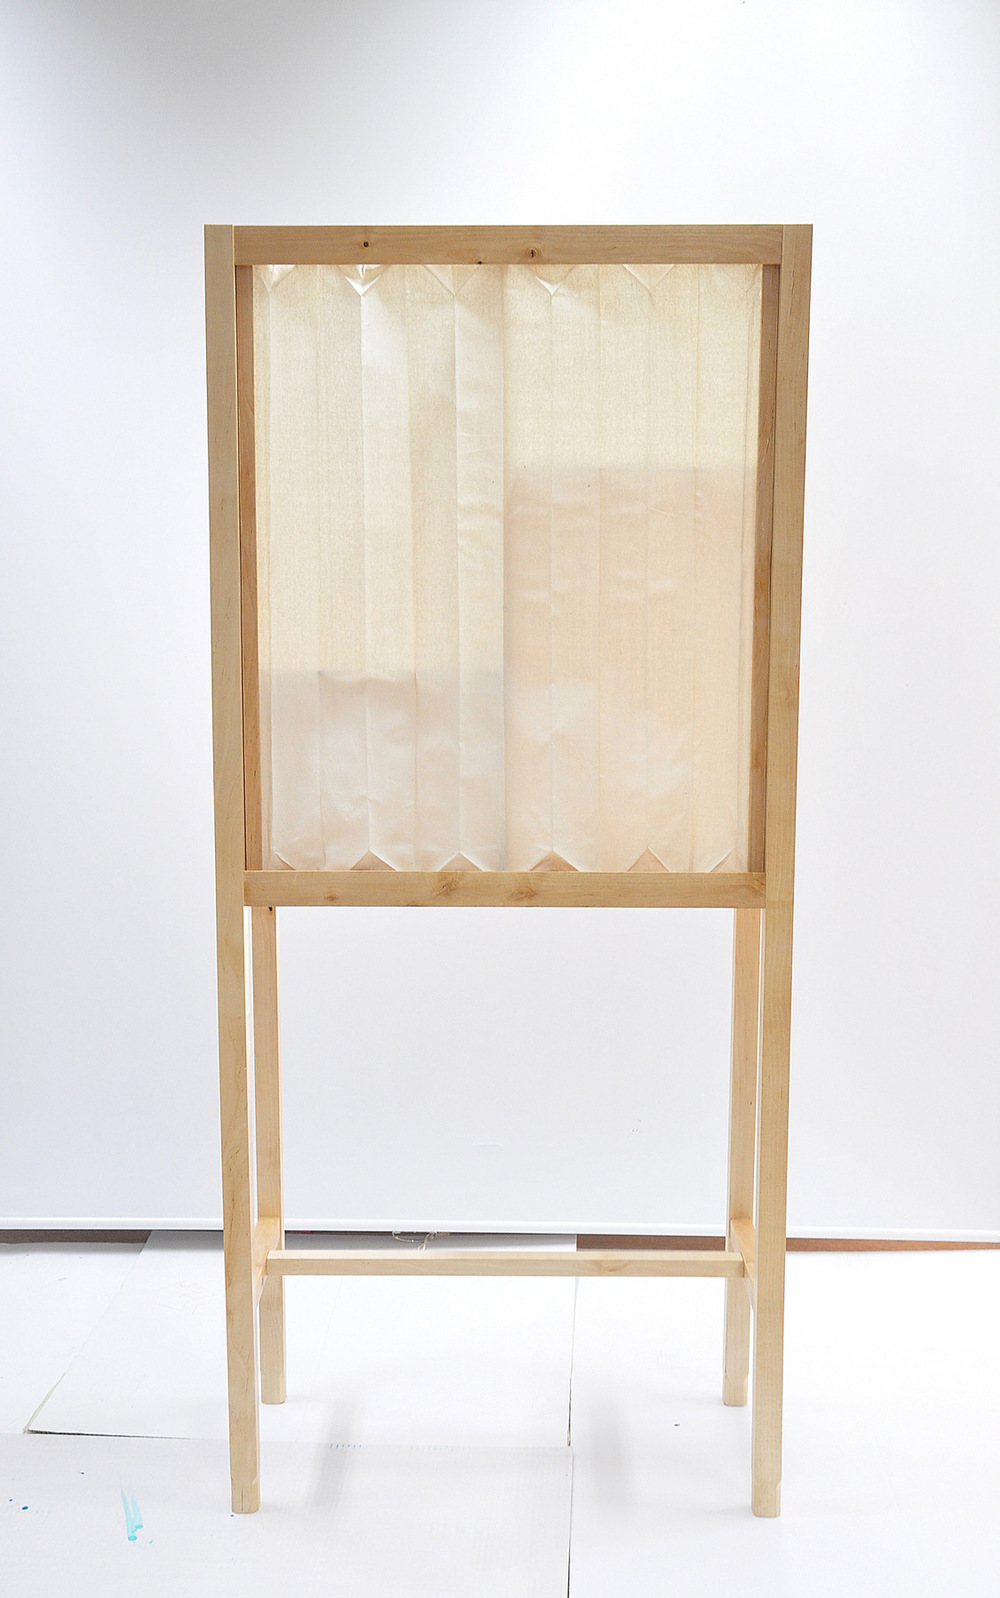 Dackelid Form - The cabinet has doors and sides made of raw silk dipped in a mix of wood glue and water to get the stiffness to make the creases